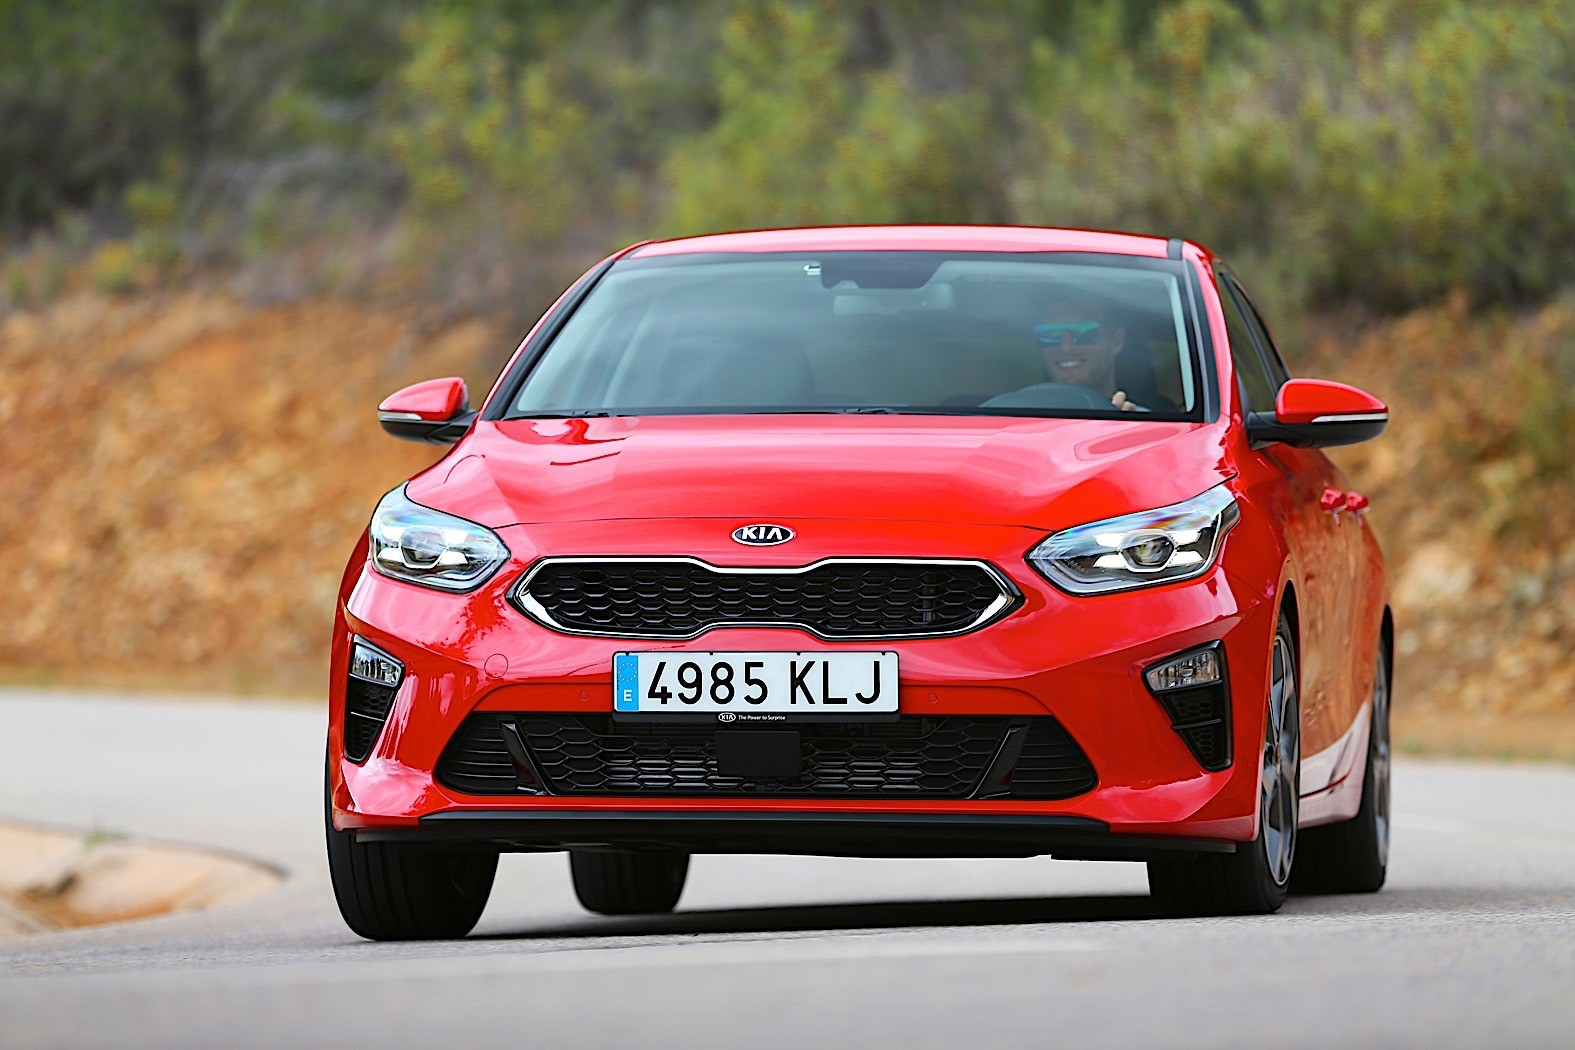 2018 kia ceed to hit european roads in august priced at gbp 18 295 in the uk autoevolution. Black Bedroom Furniture Sets. Home Design Ideas